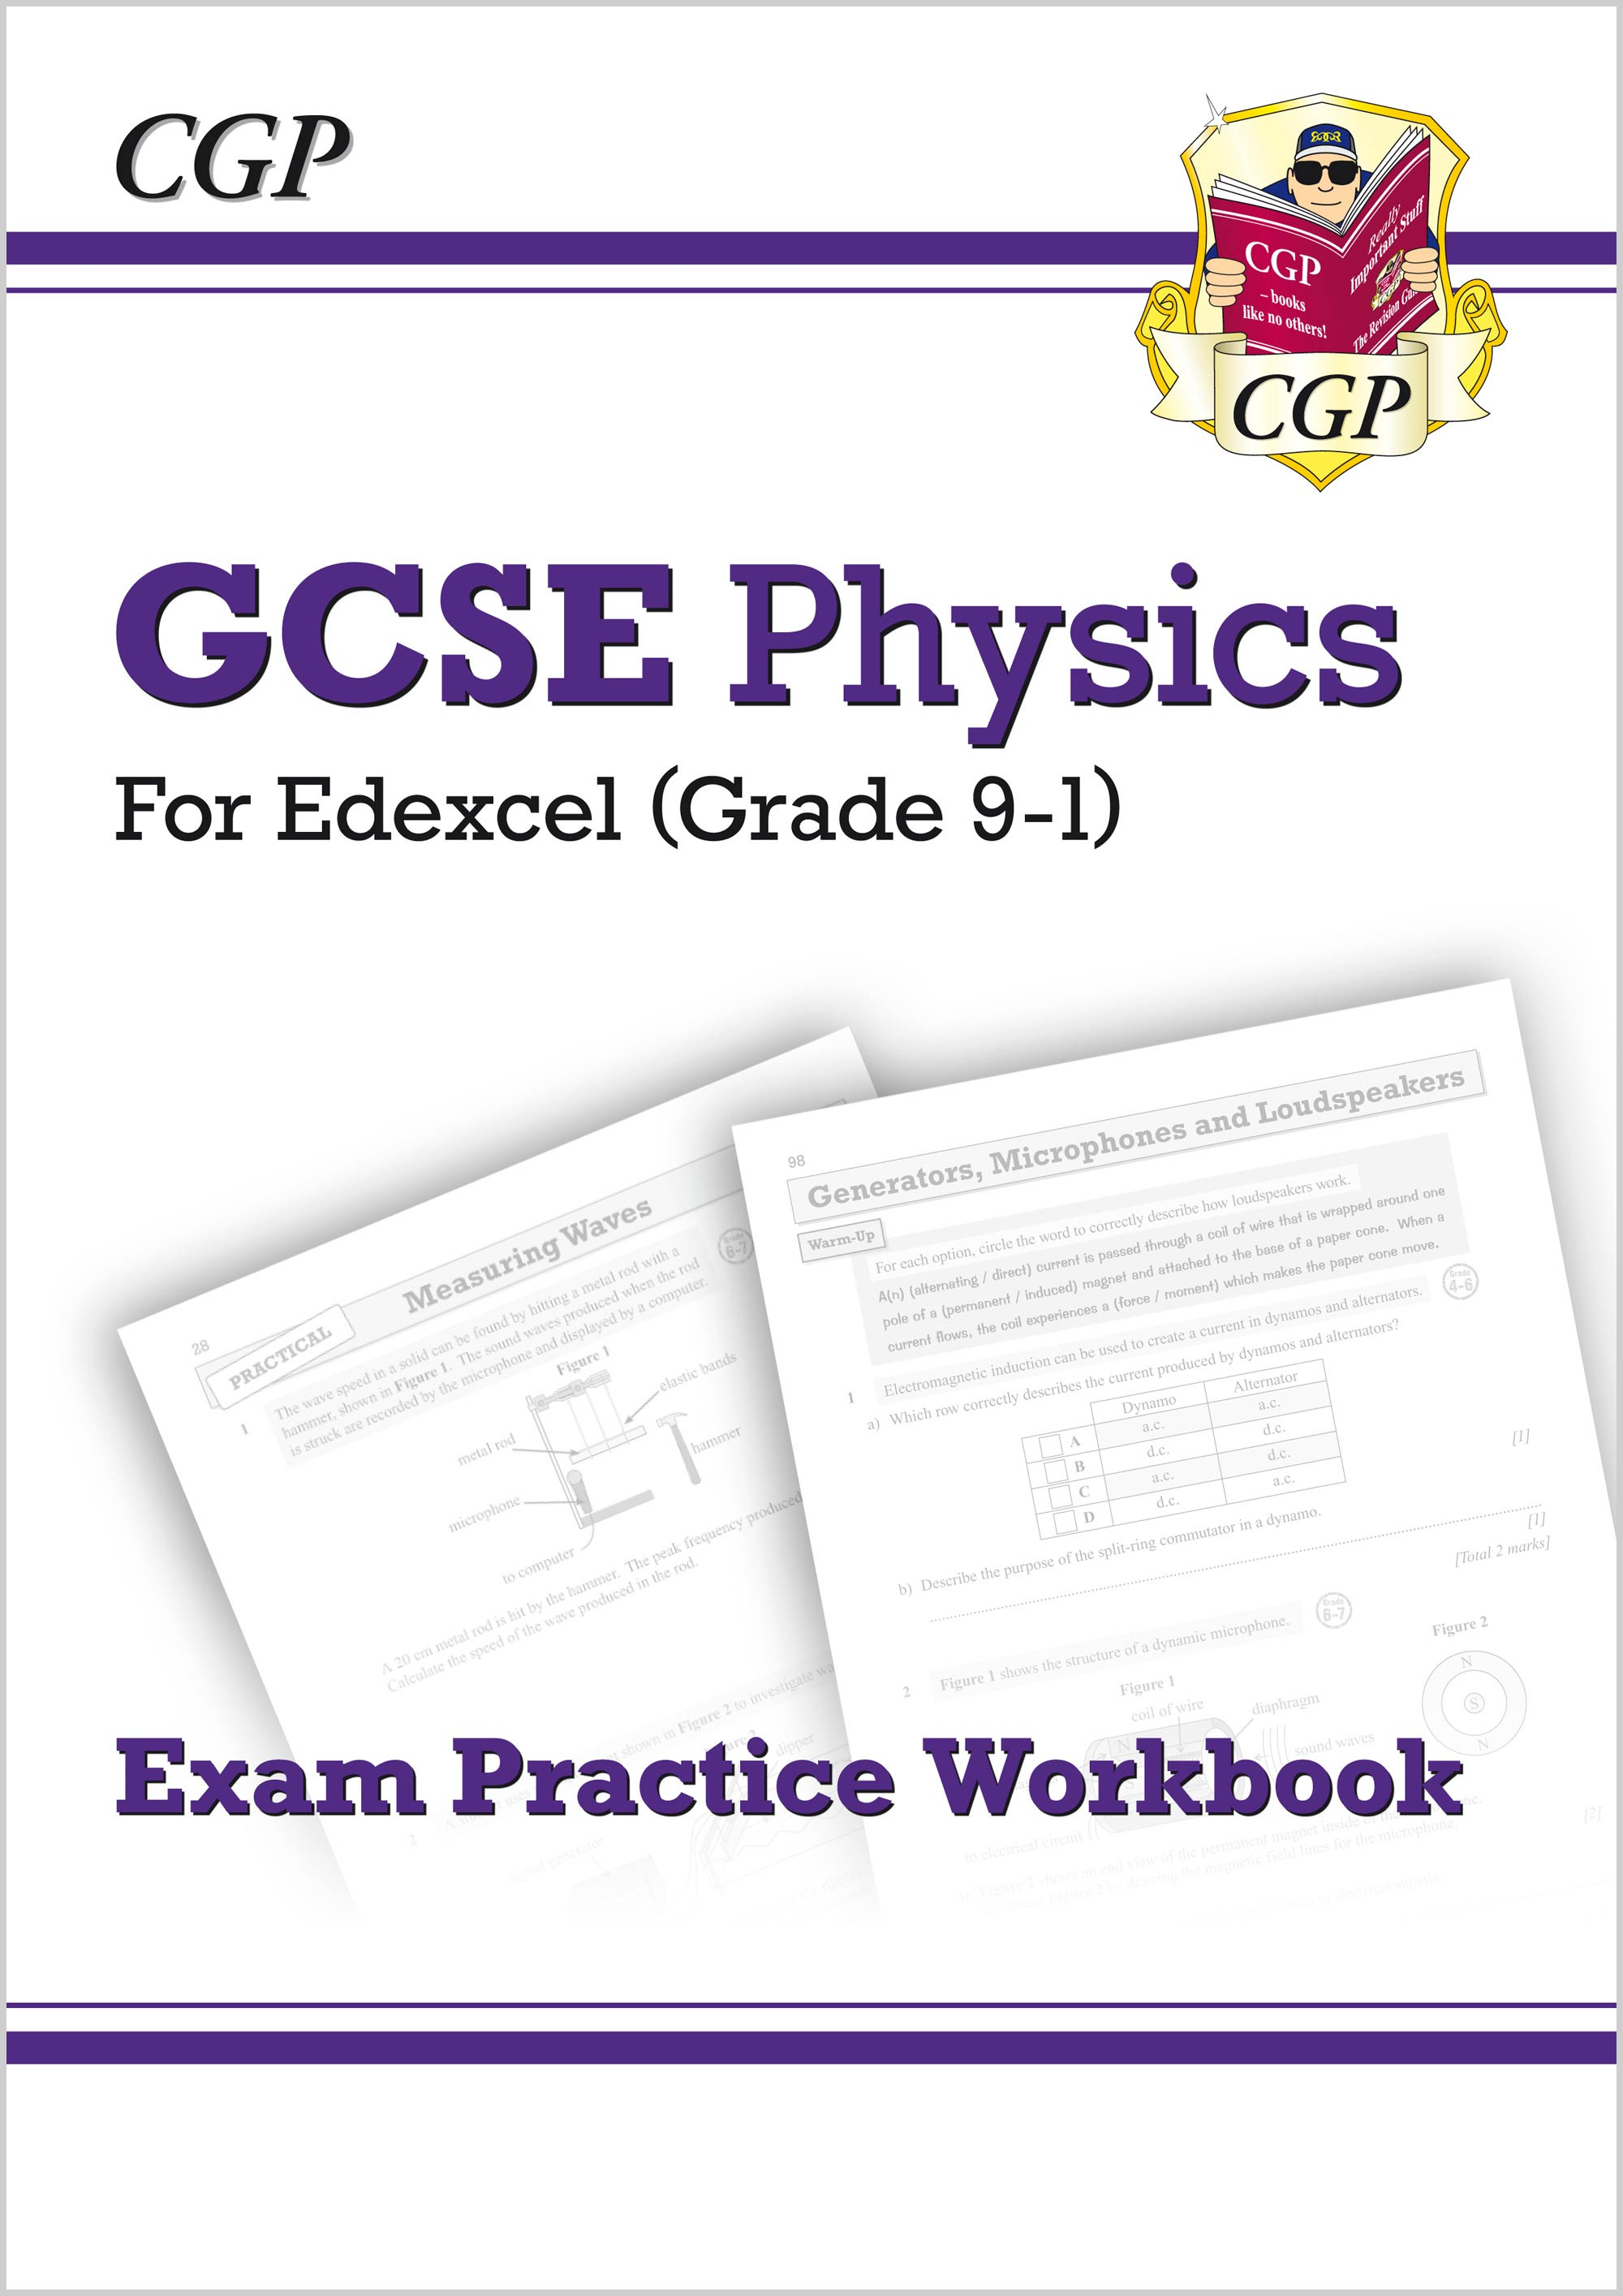 PEQ41 - New Grade 9-1 GCSE Physics: Edexcel Exam Practice Workbook